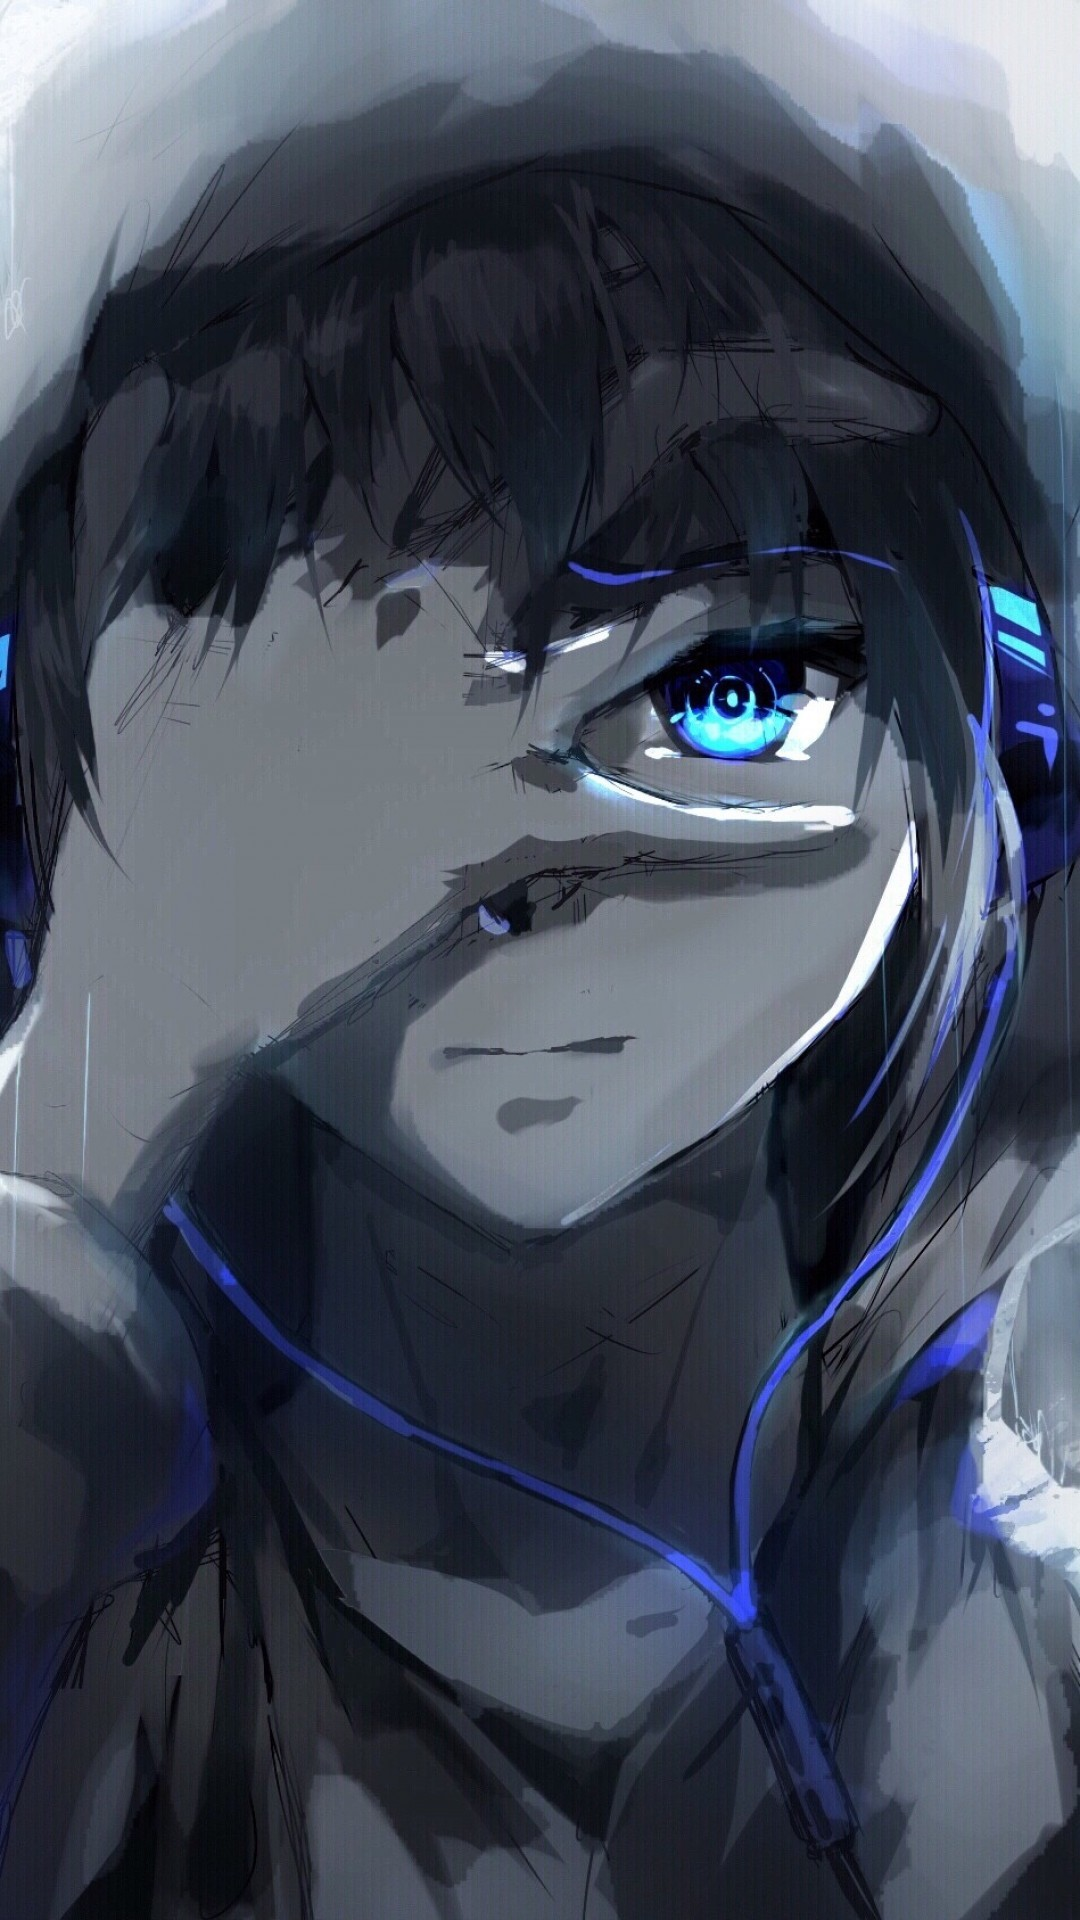 1080x1920 Anime Boy, Hoodie, Blue Eyes, Headphones, Painting